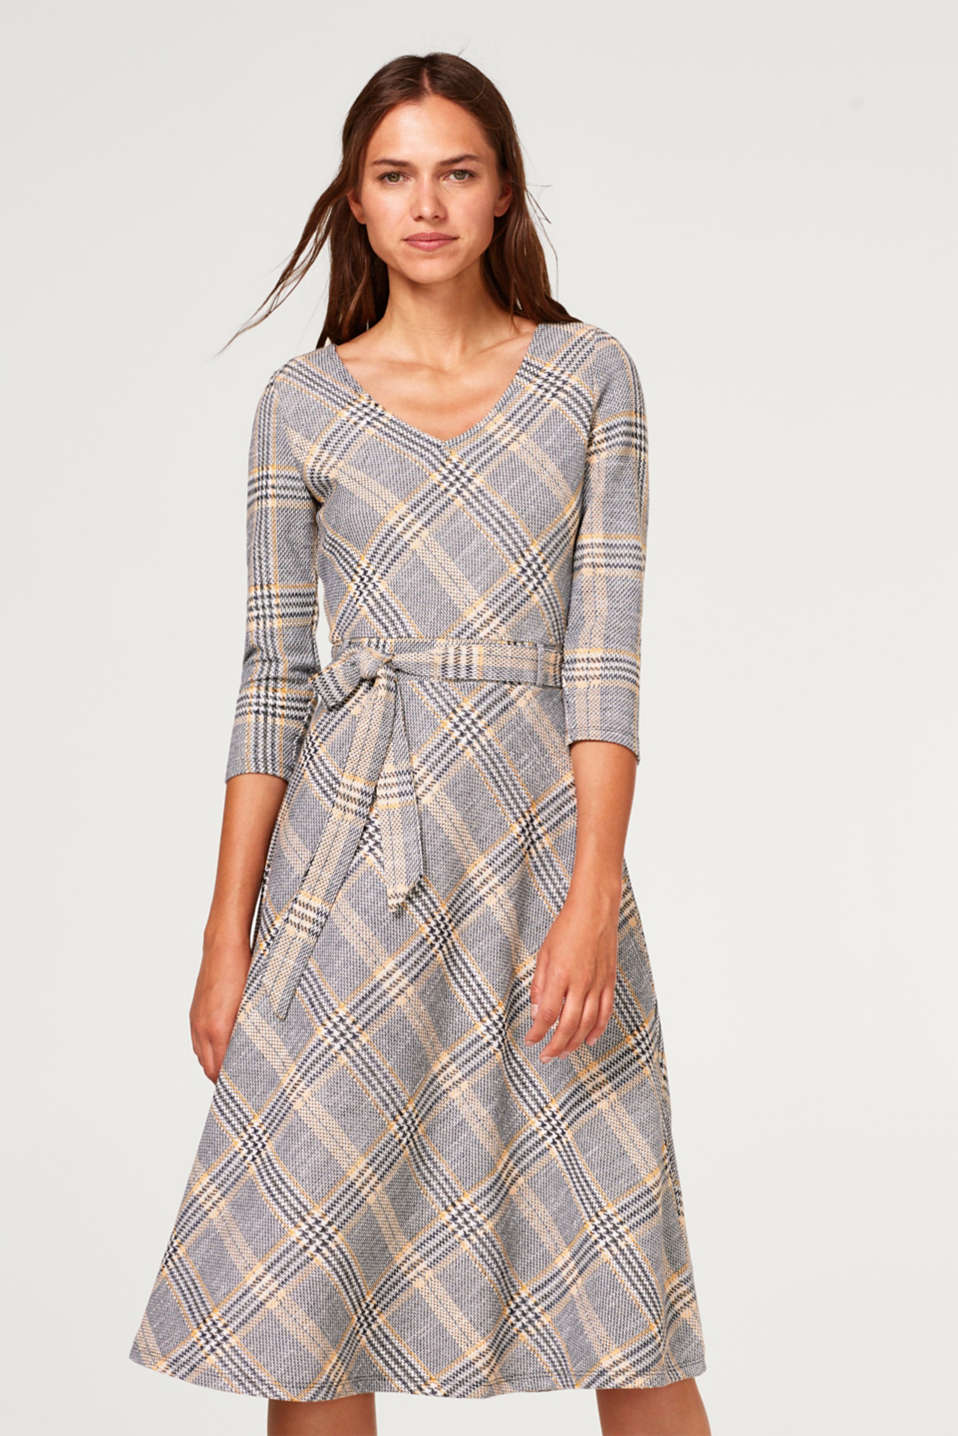 Esprit - Midi dress in a Prince of Wales check look